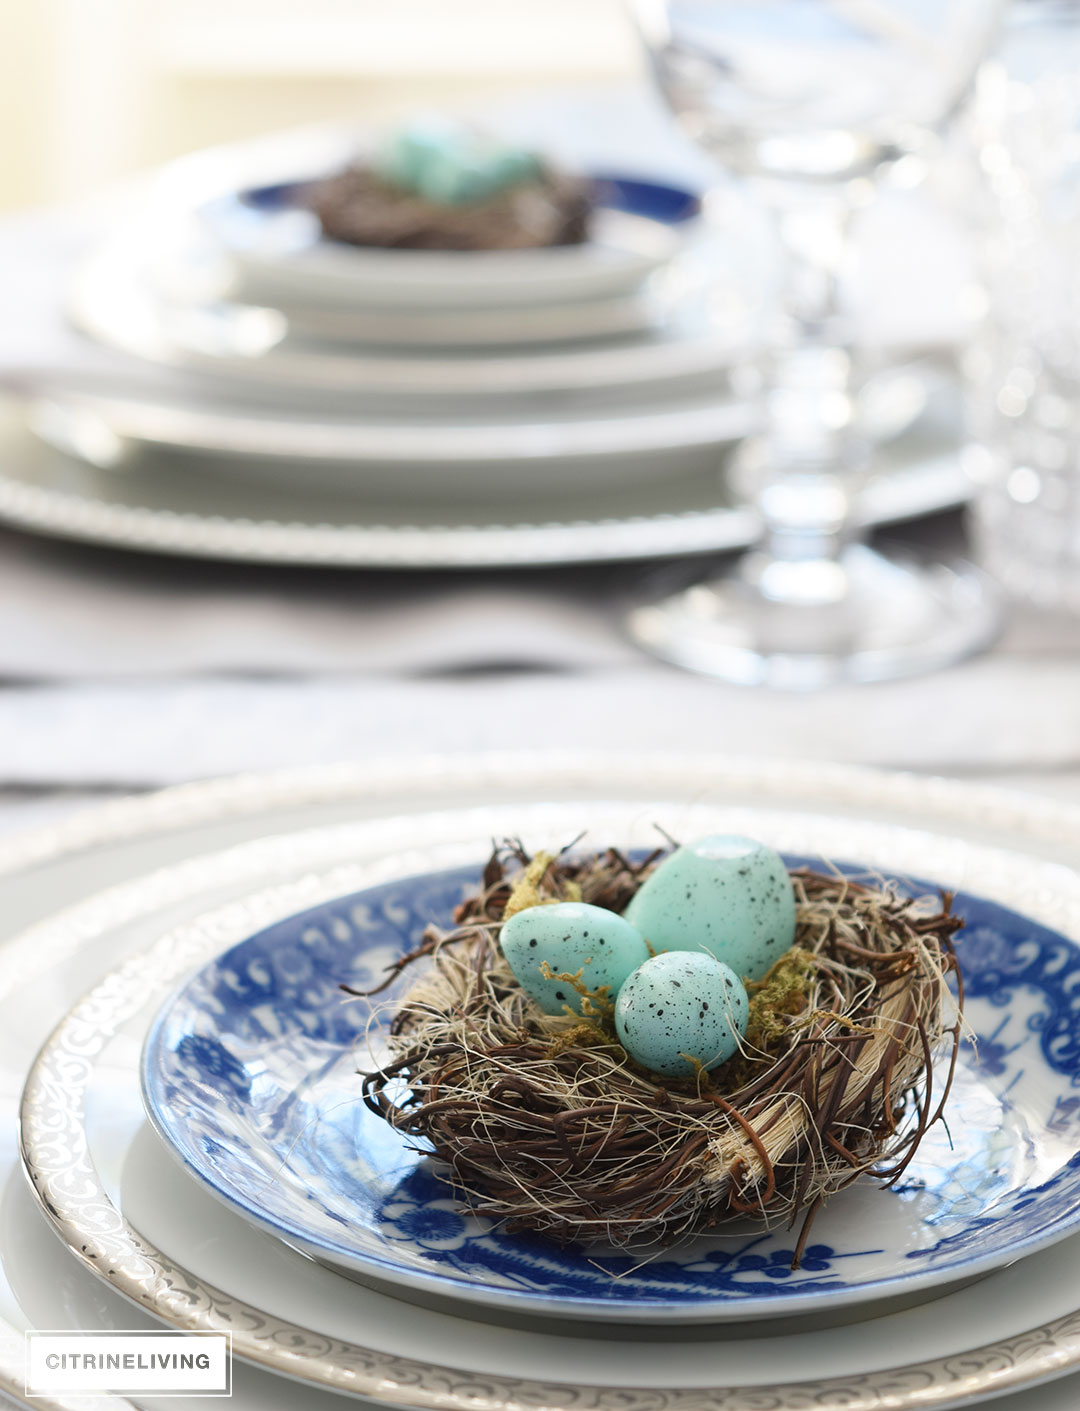 Easter or Spring table setting with pale turquoise eggs atop a mix of blue and white and silver china.